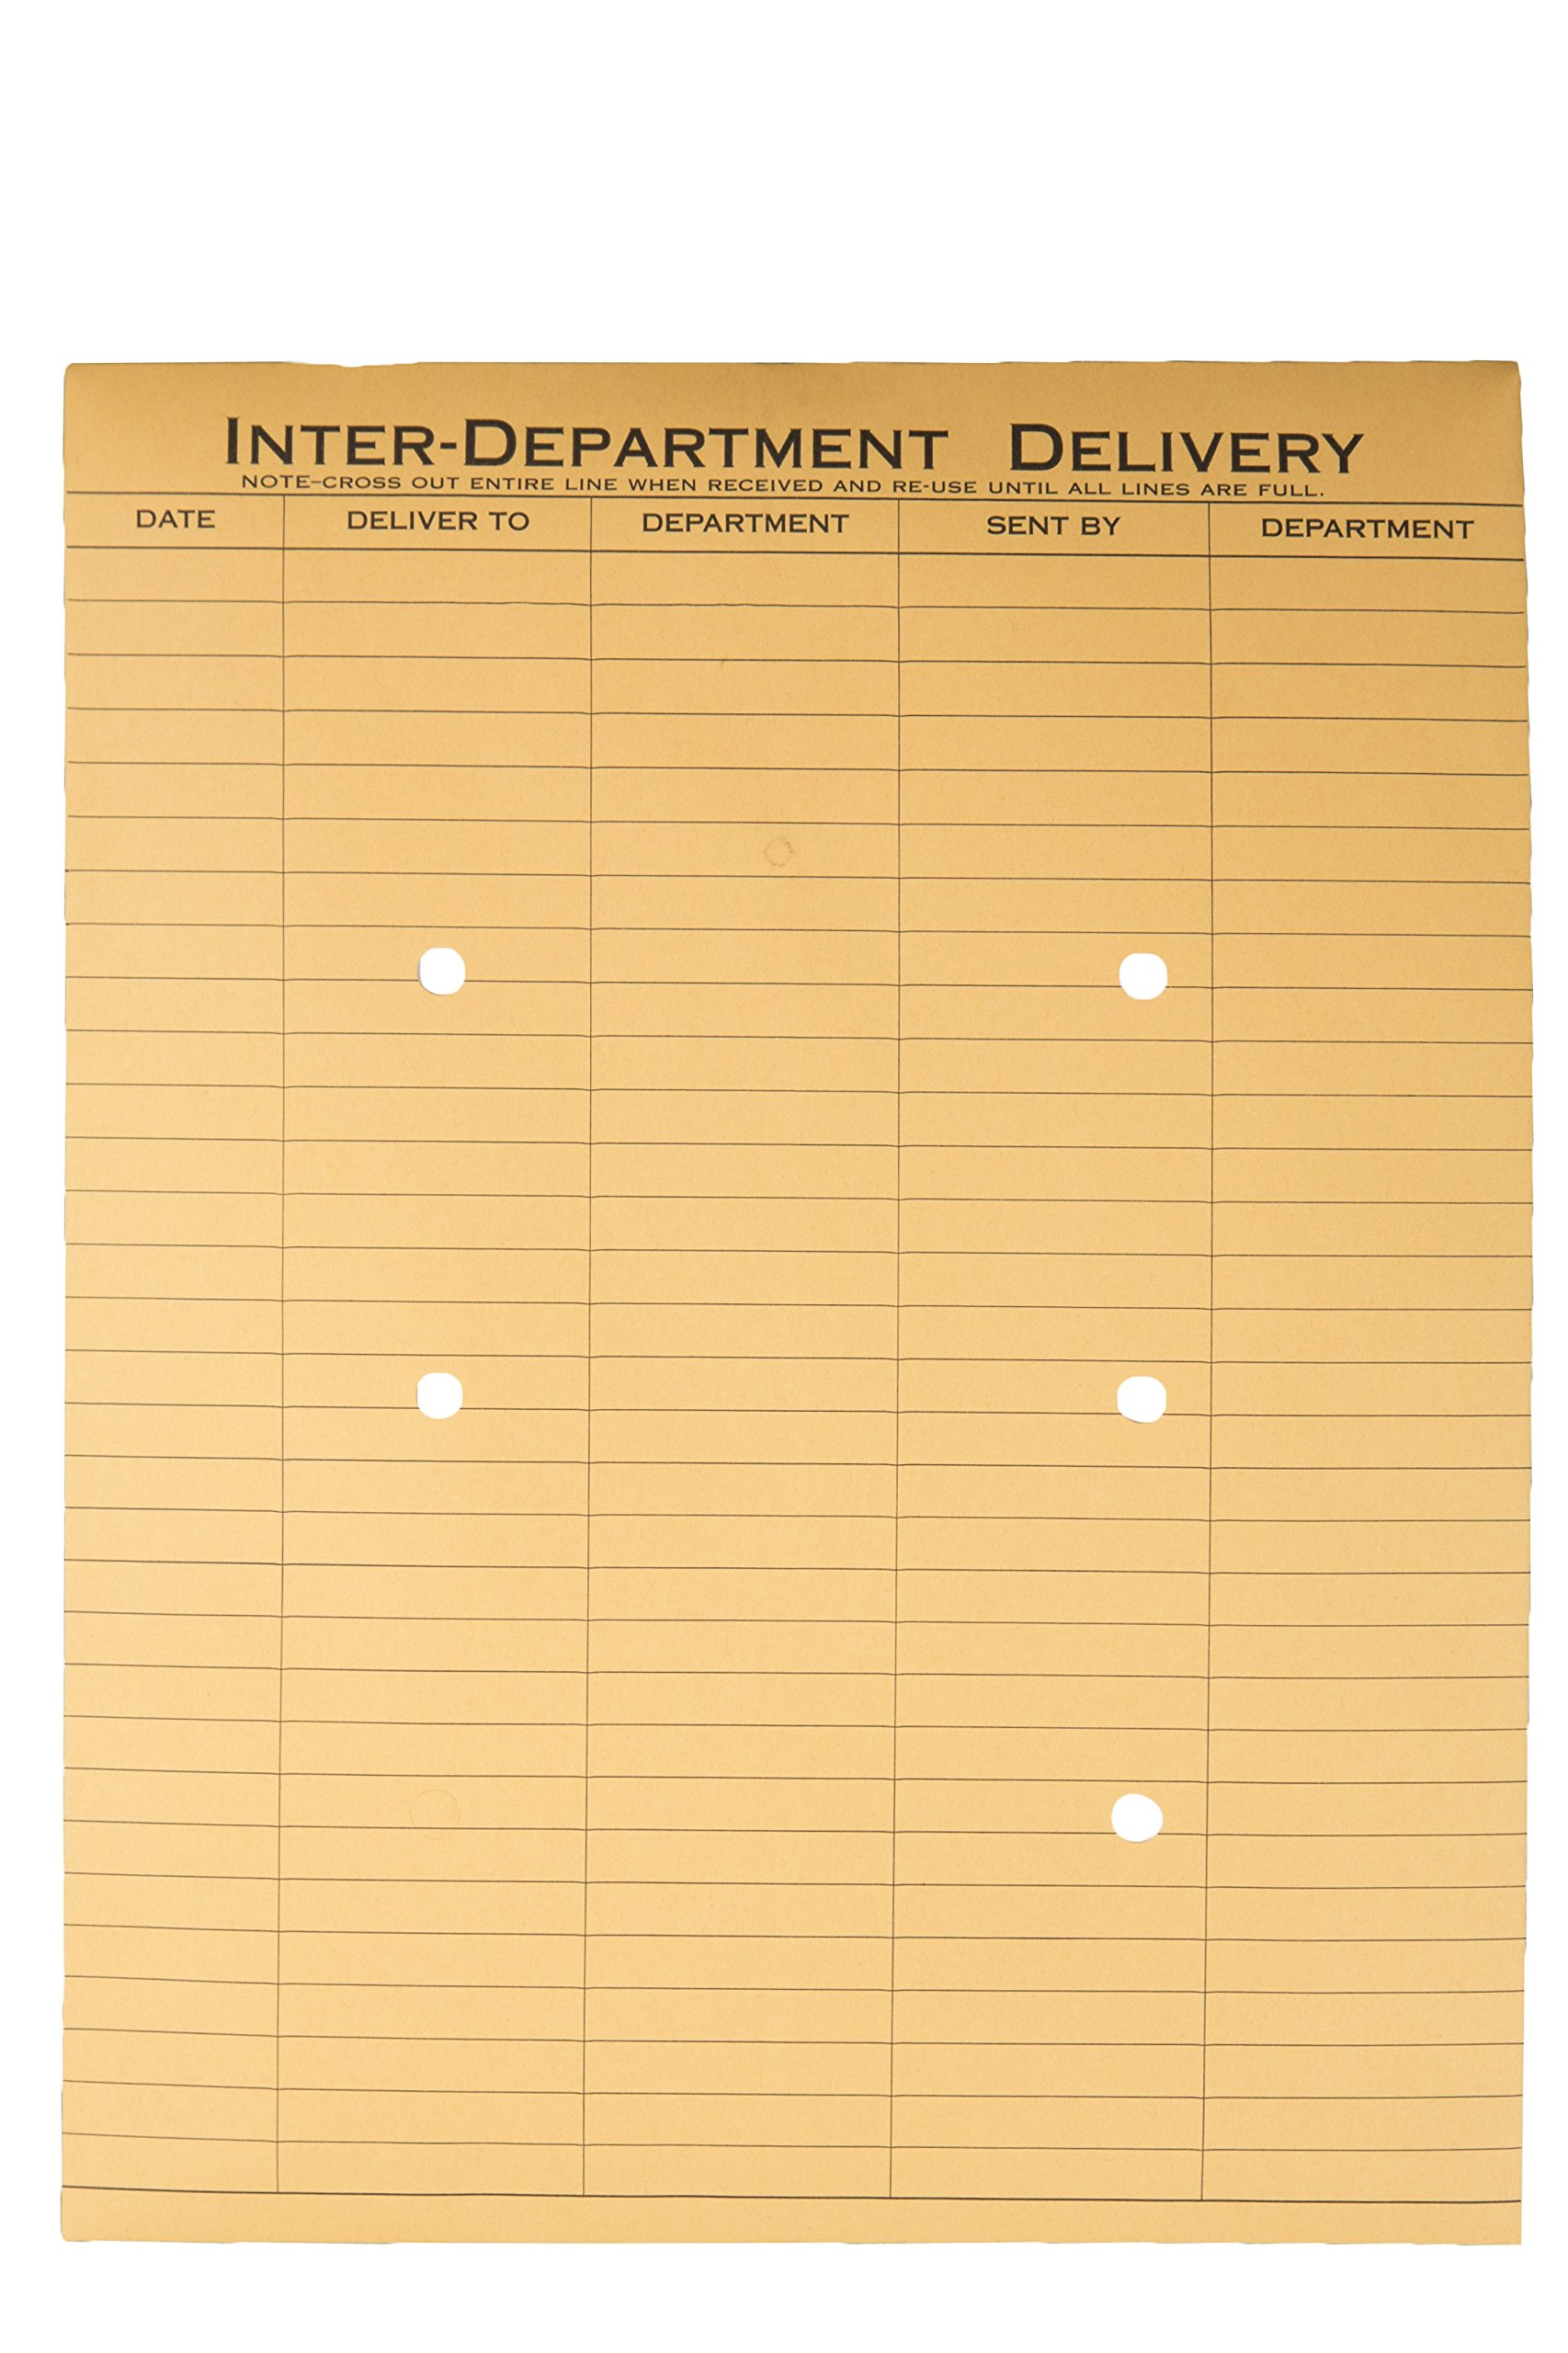 Quality Park 10 x 13 Inter-Departmental Envelopes with String & Button Closure for Interoffice Routing, 28 lb Recycled Brown Kraft, 100 per Carton (QUA63560)